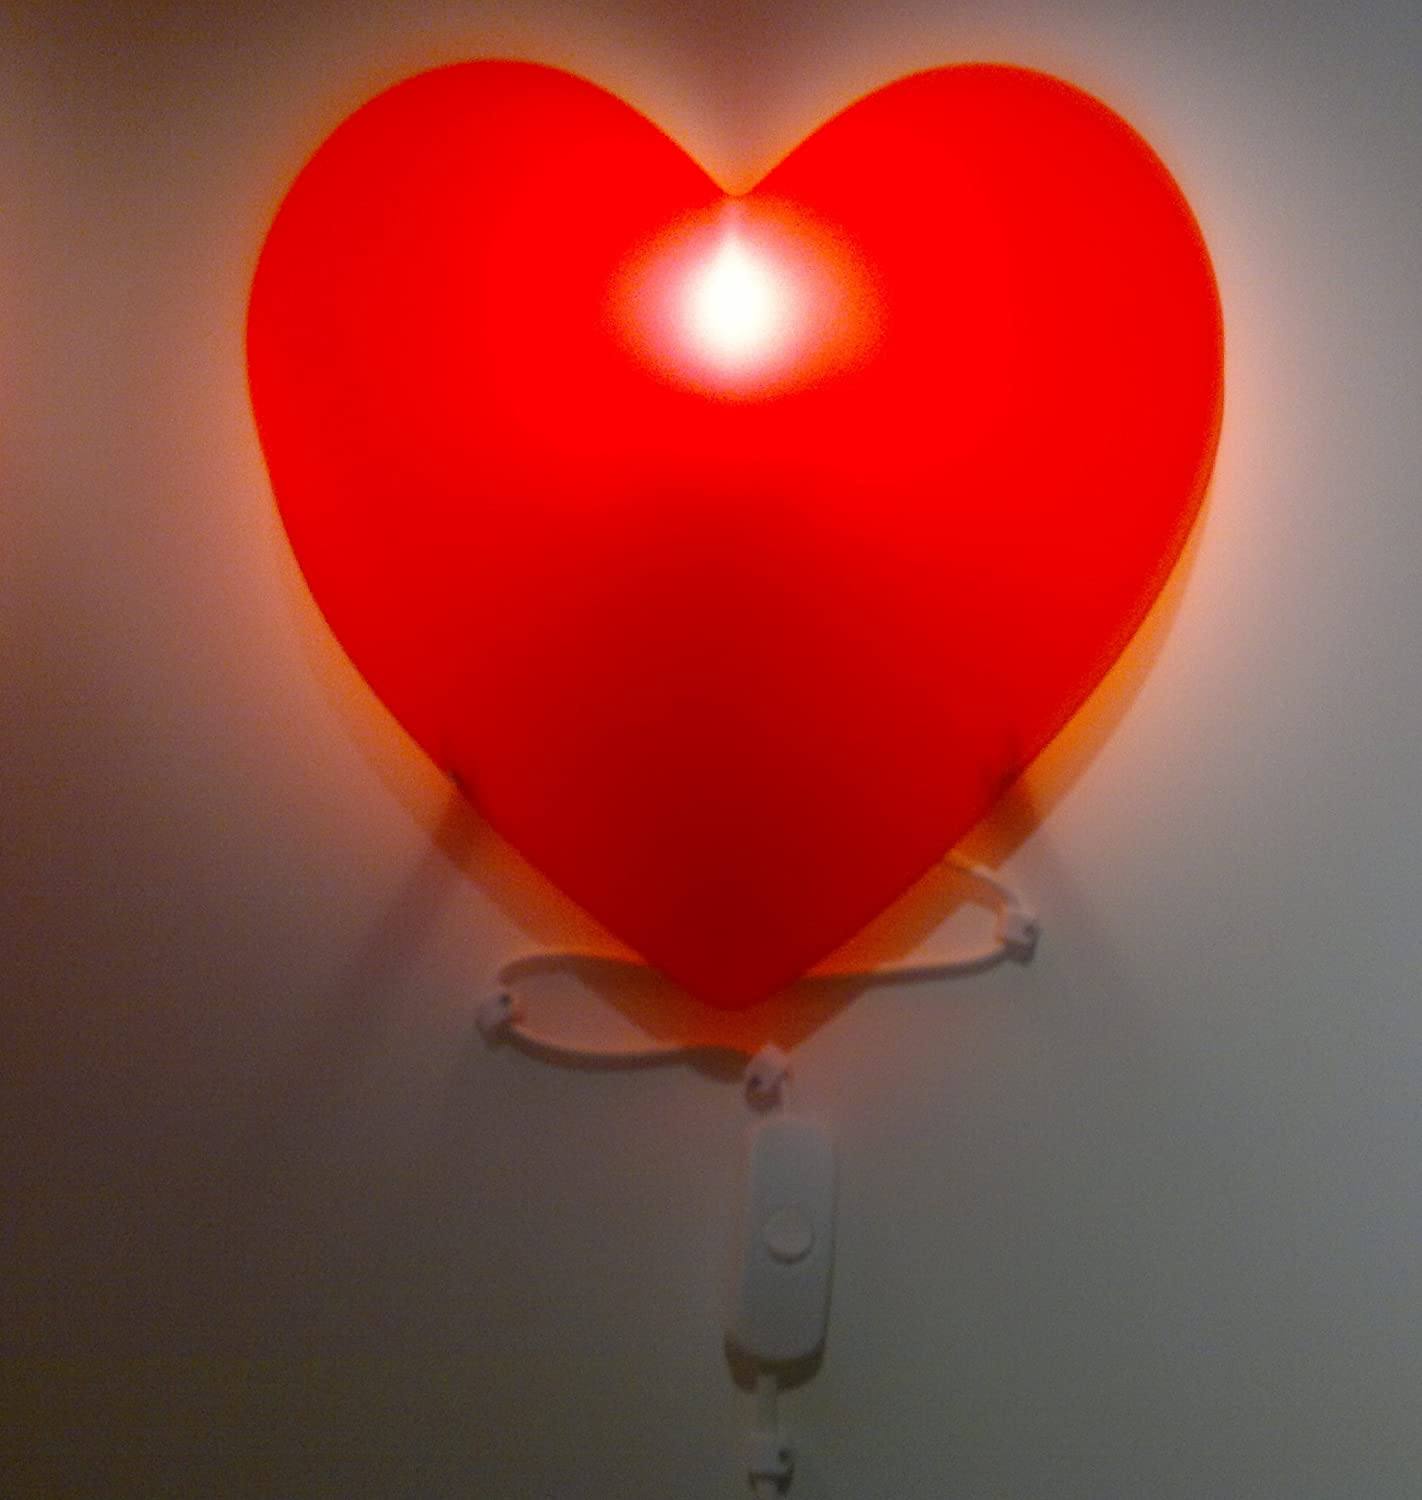 Ikea children red heart bedroom wall light amazon kitchen home mozeypictures Image collections